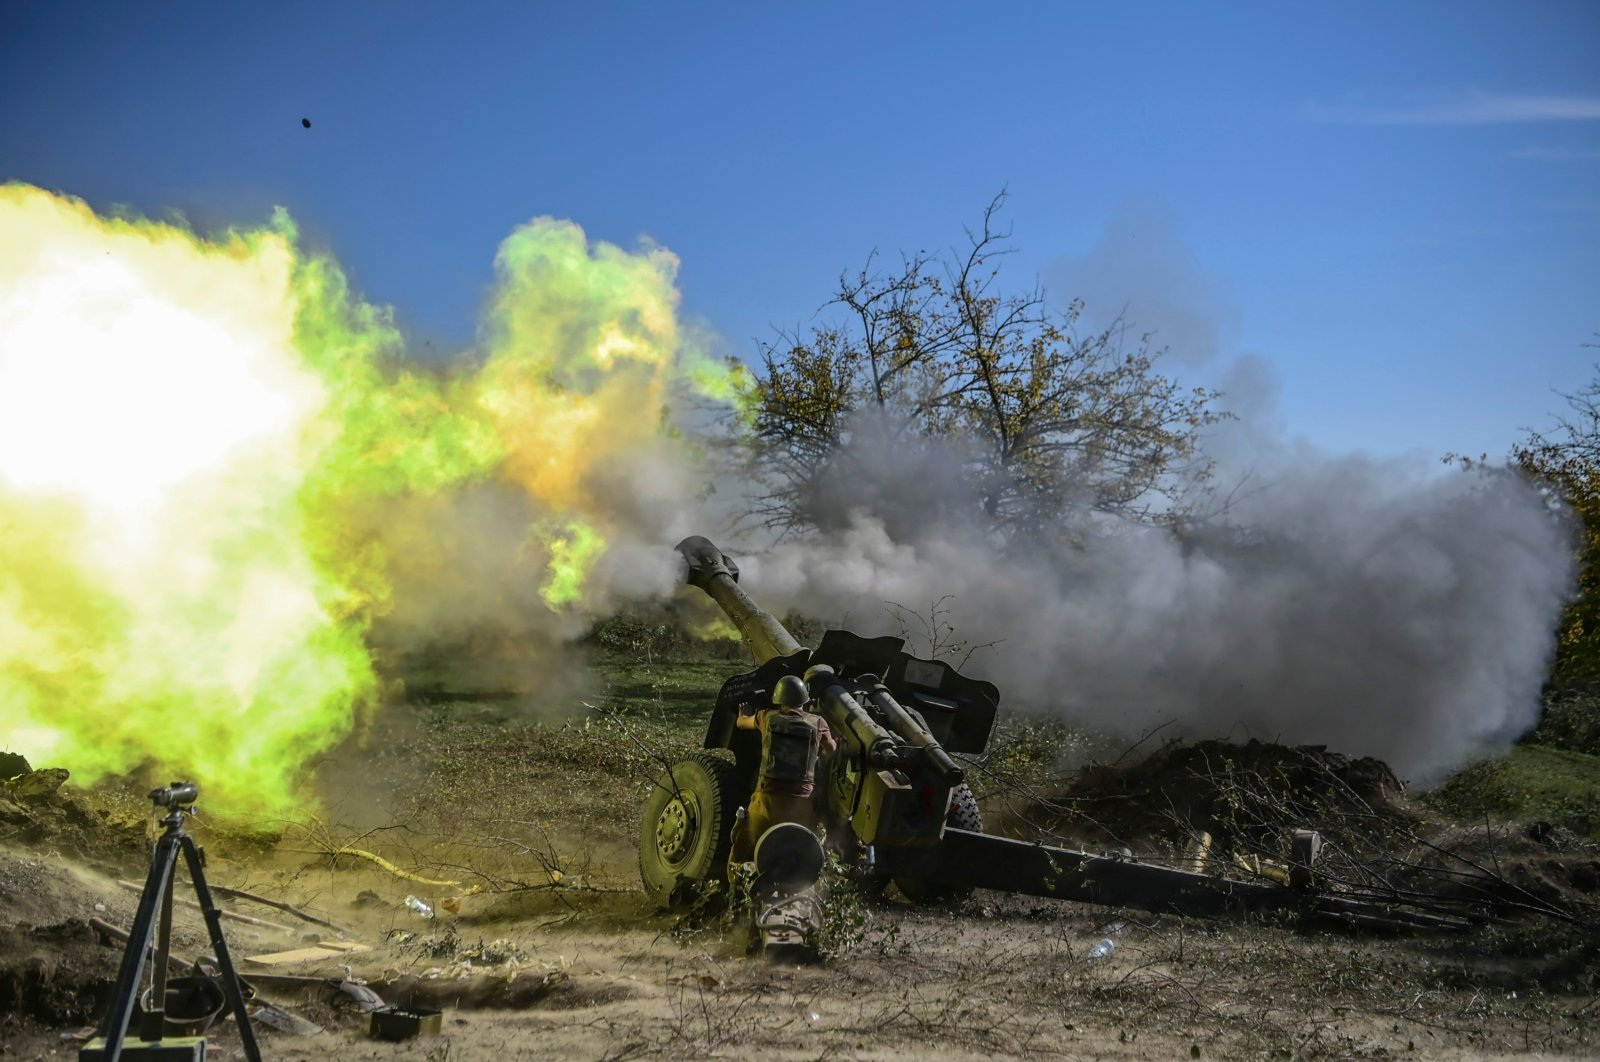 An Armenian soldier fires artillery on the front line during the ongoing fighting between Armenian and Azerbaijani forces over the region of Nagorno-Karabakh, Azerbaijan, Oct. 25, 2020. (AFP Photo)